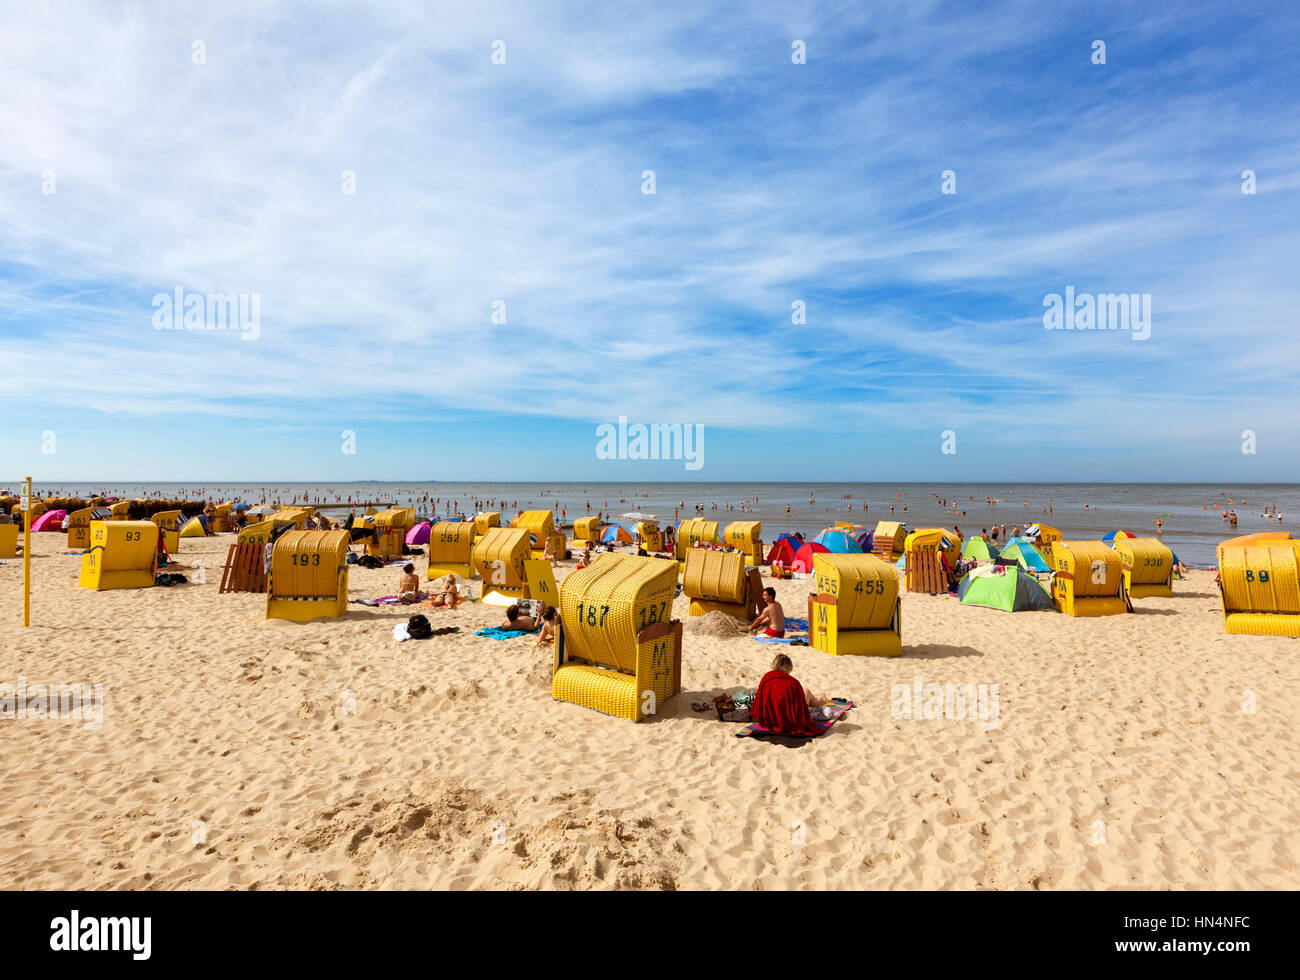 Cuxhaven, Germany - August 18, 2012: People enjoying the hottest day of the year at the beach of Duhnen with its - Stock Image